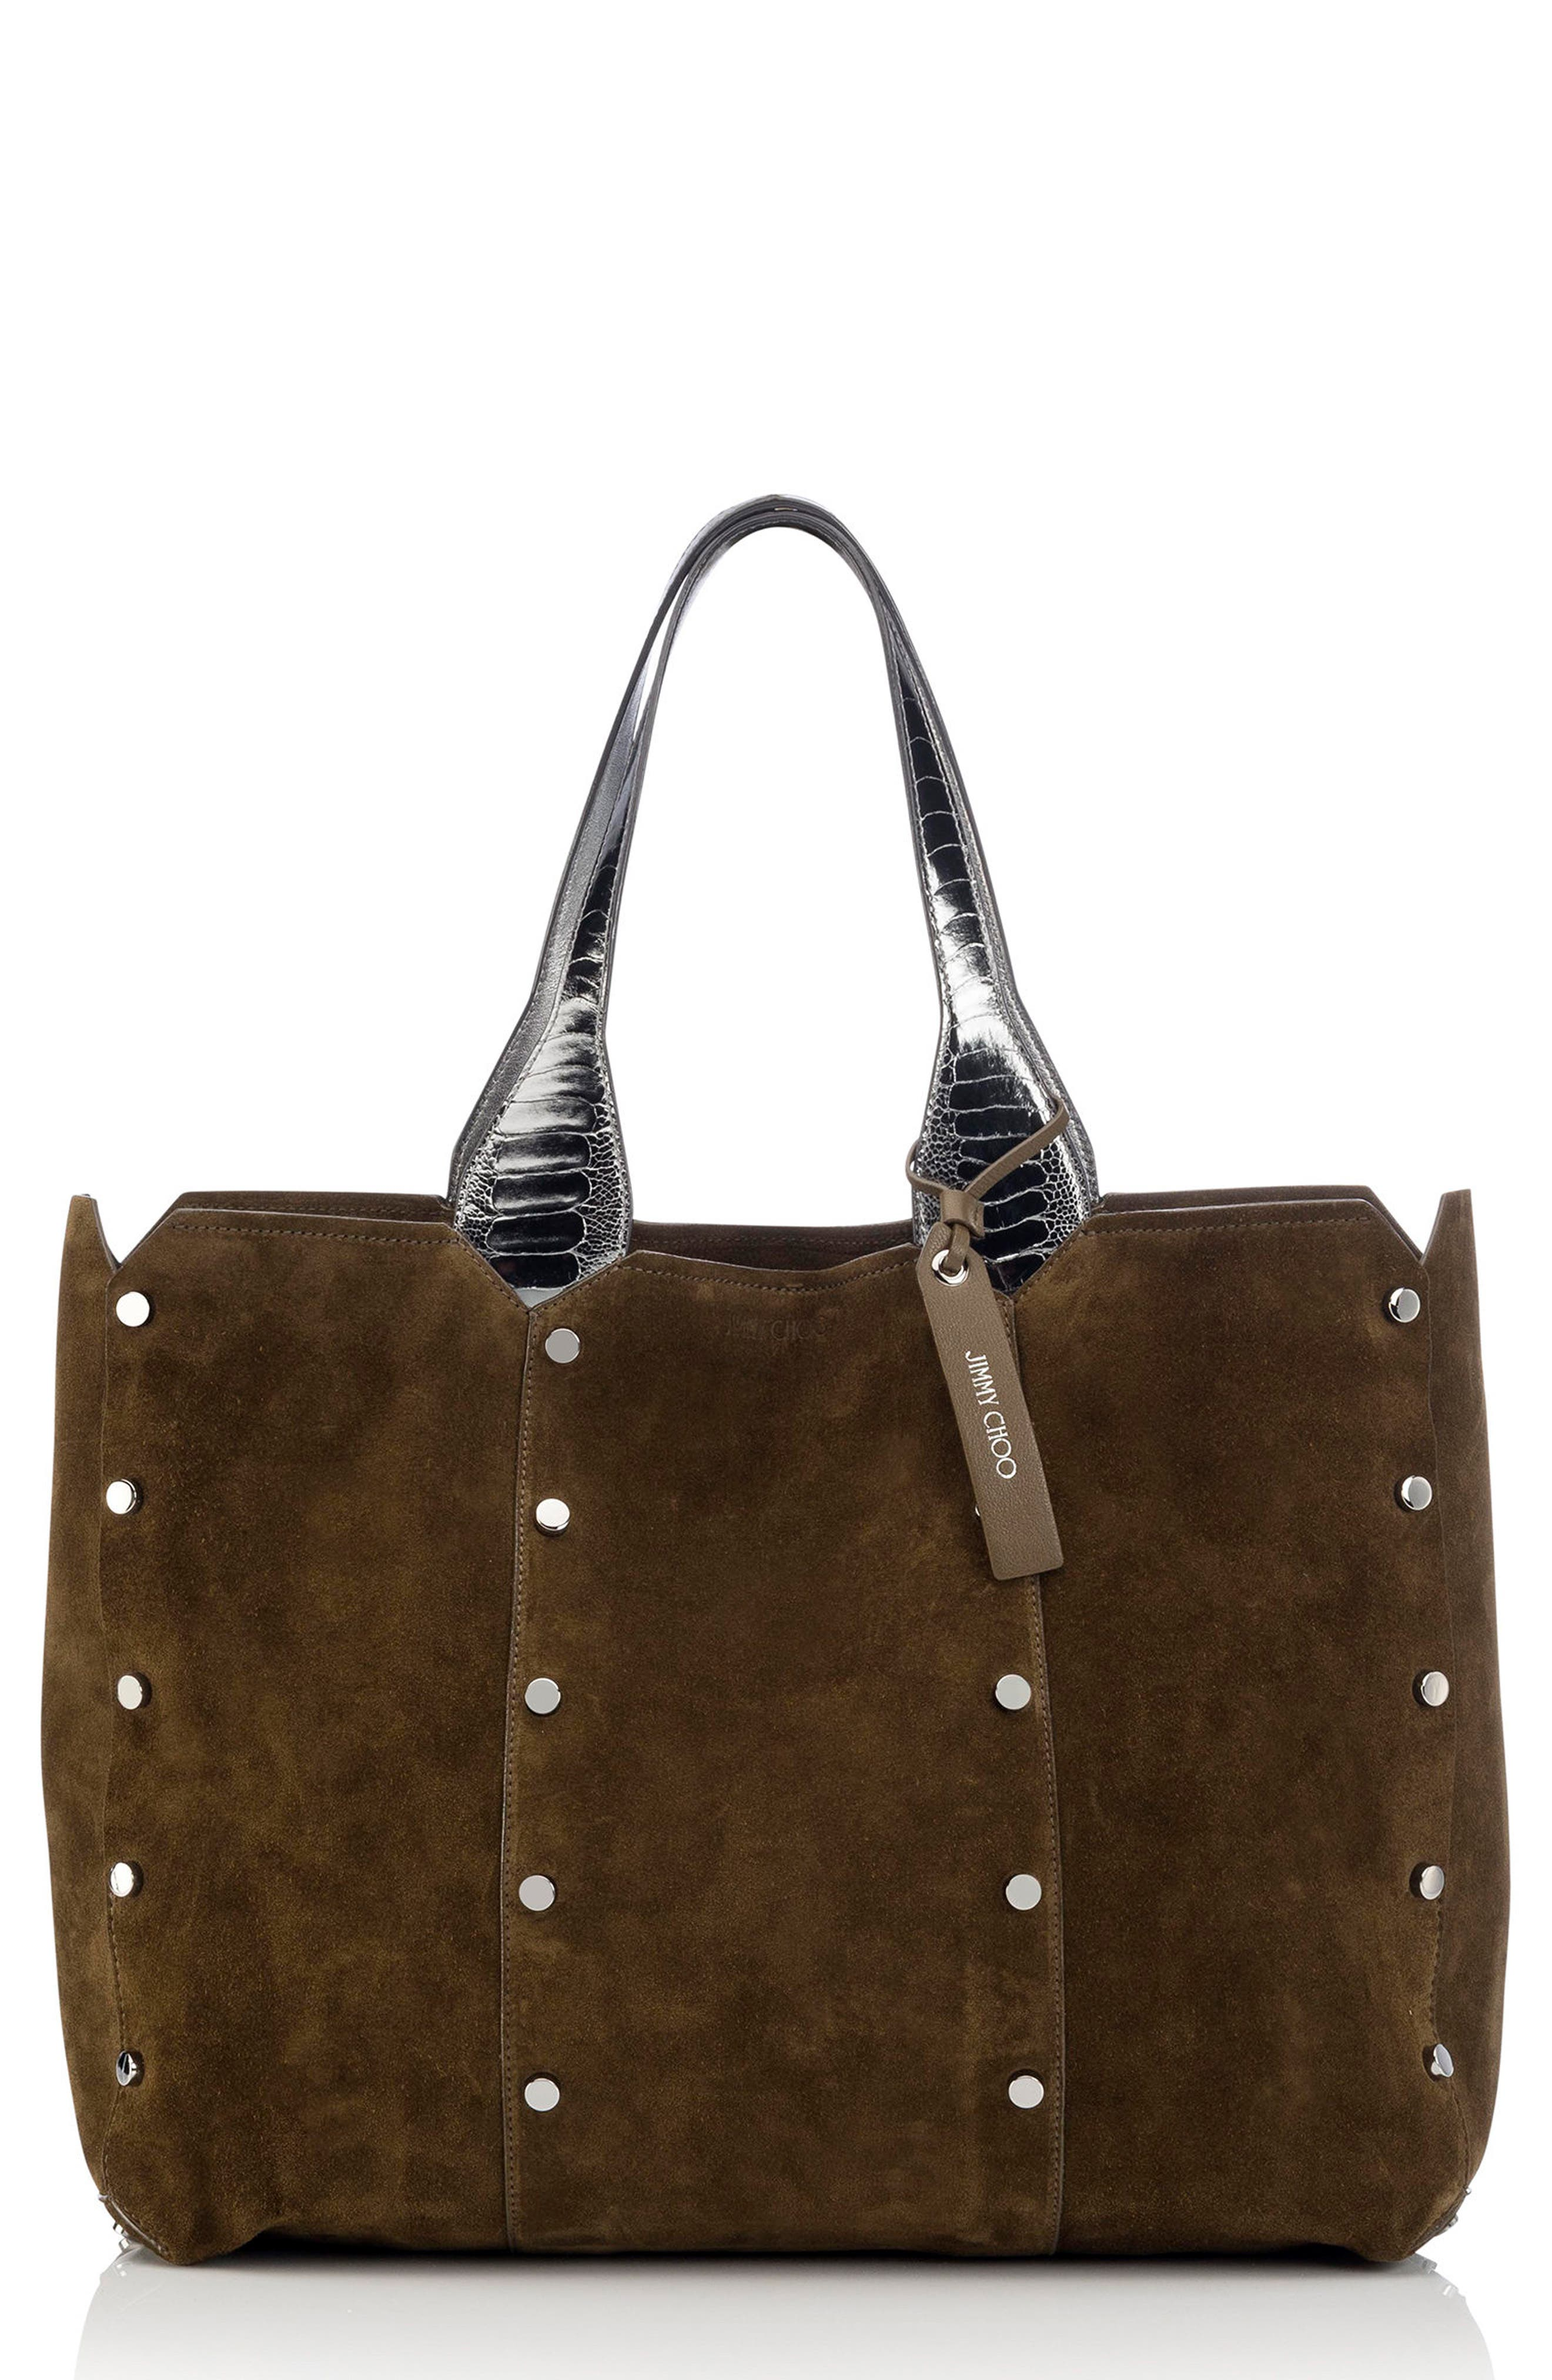 Lockett Suede & Metallic Leather Shopper,                         Main,                         color, Olive/ Steel